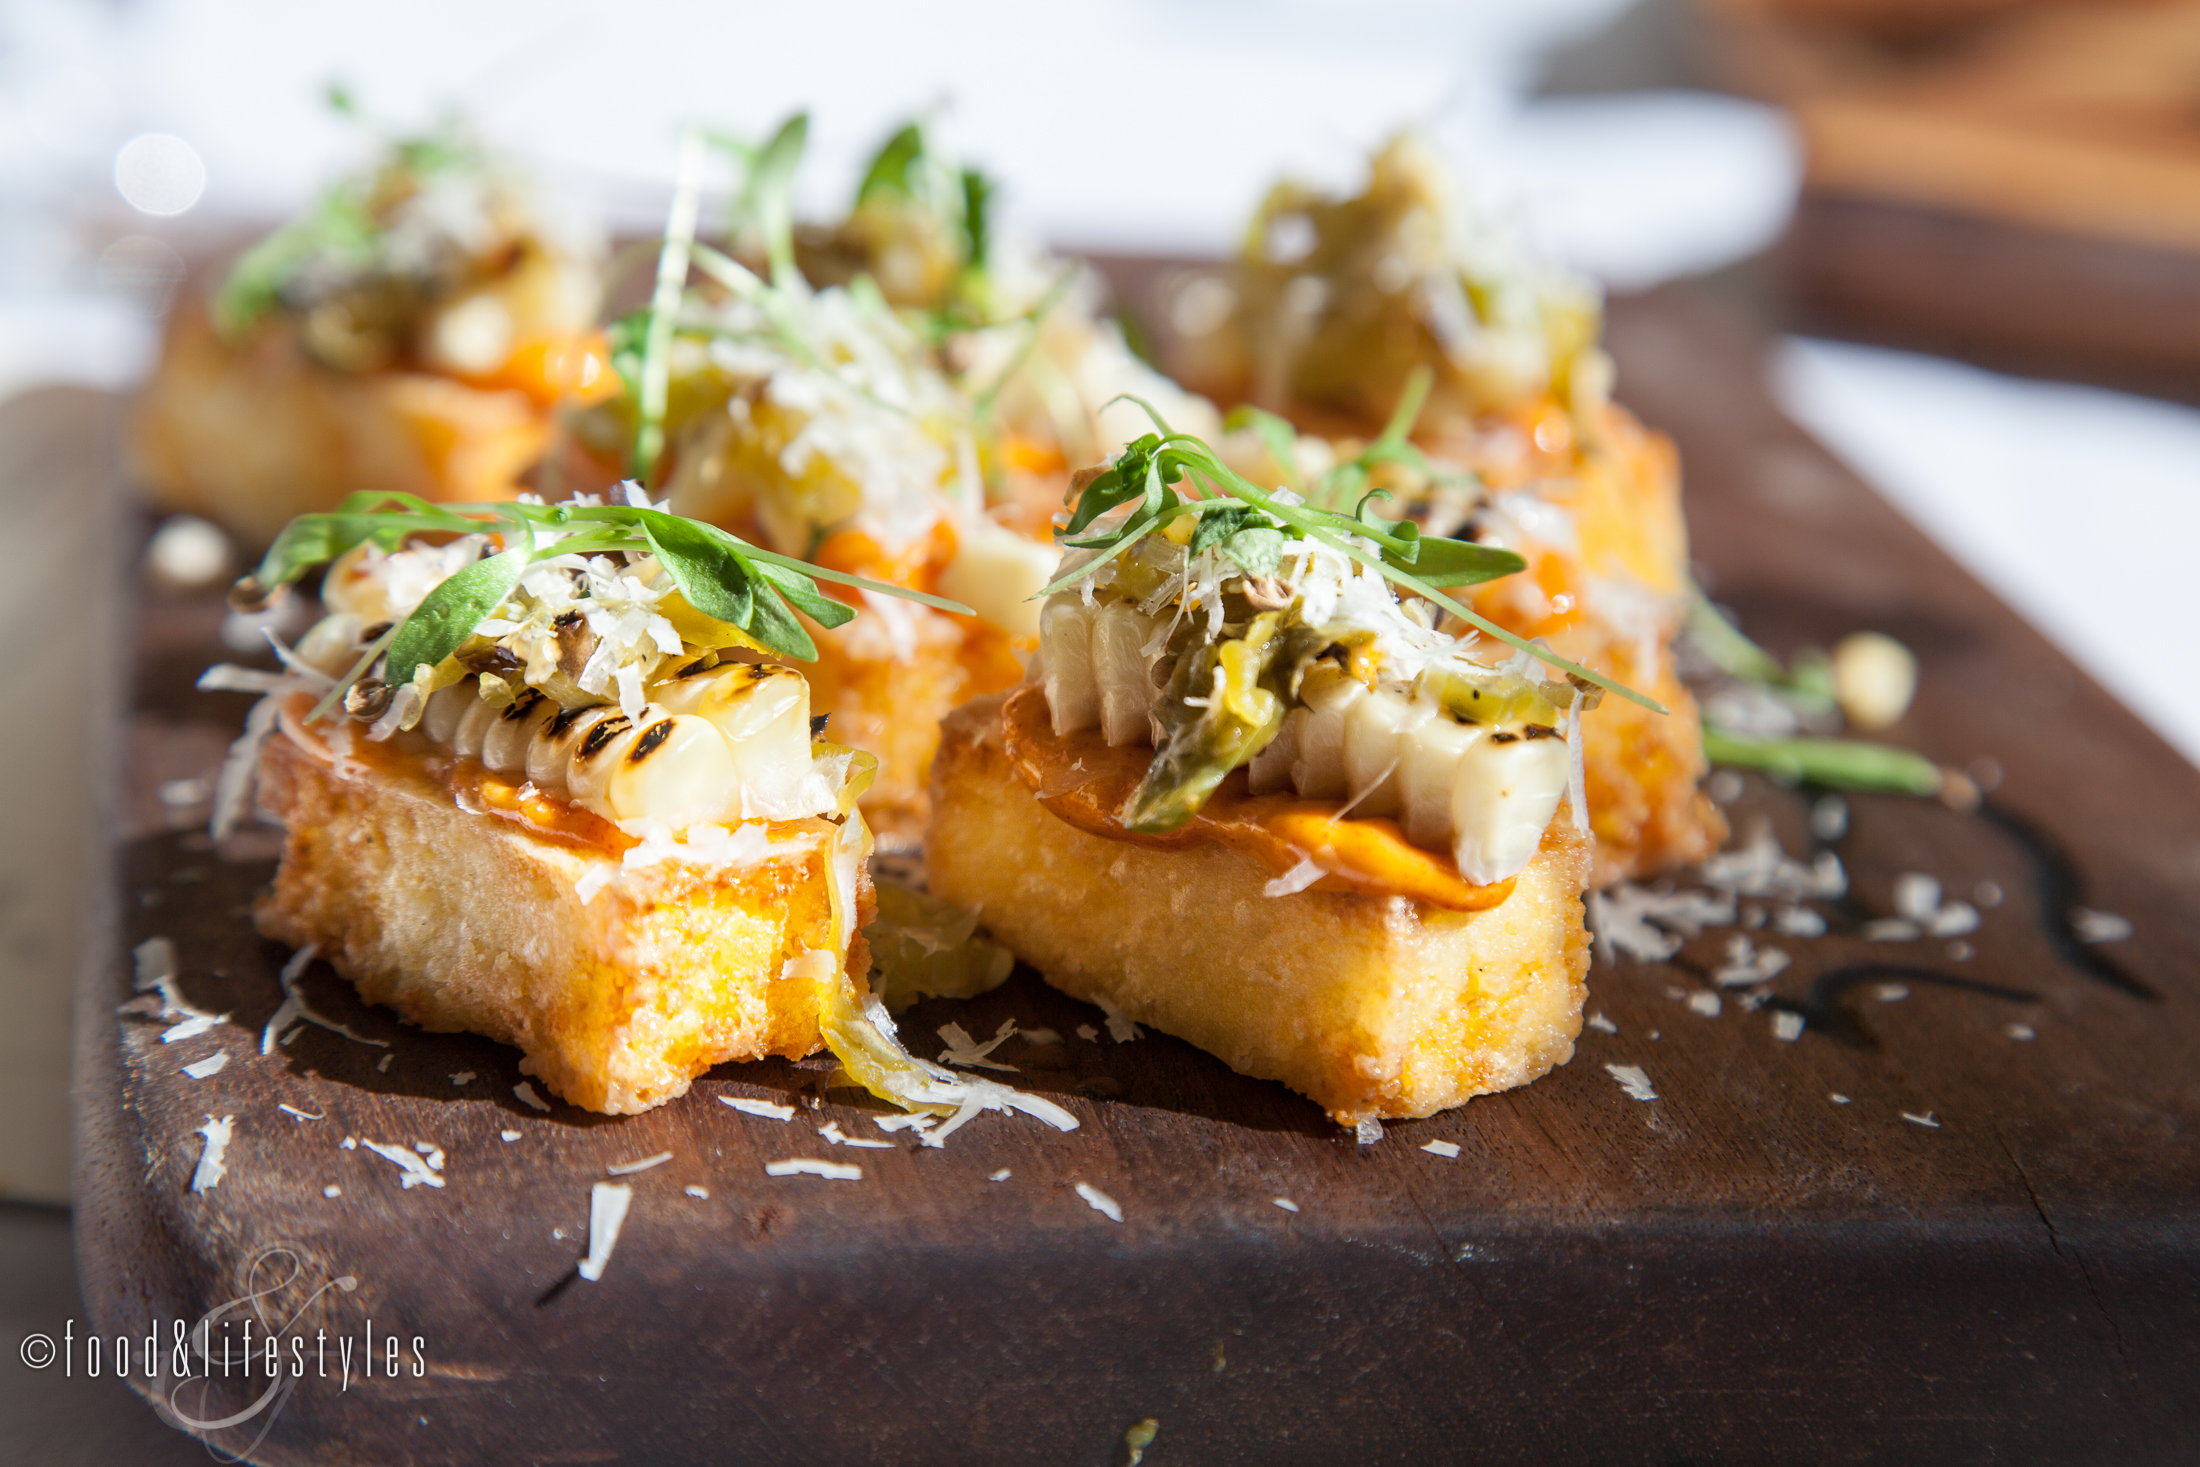 Polenta squares with shishito peppers and grilled corn